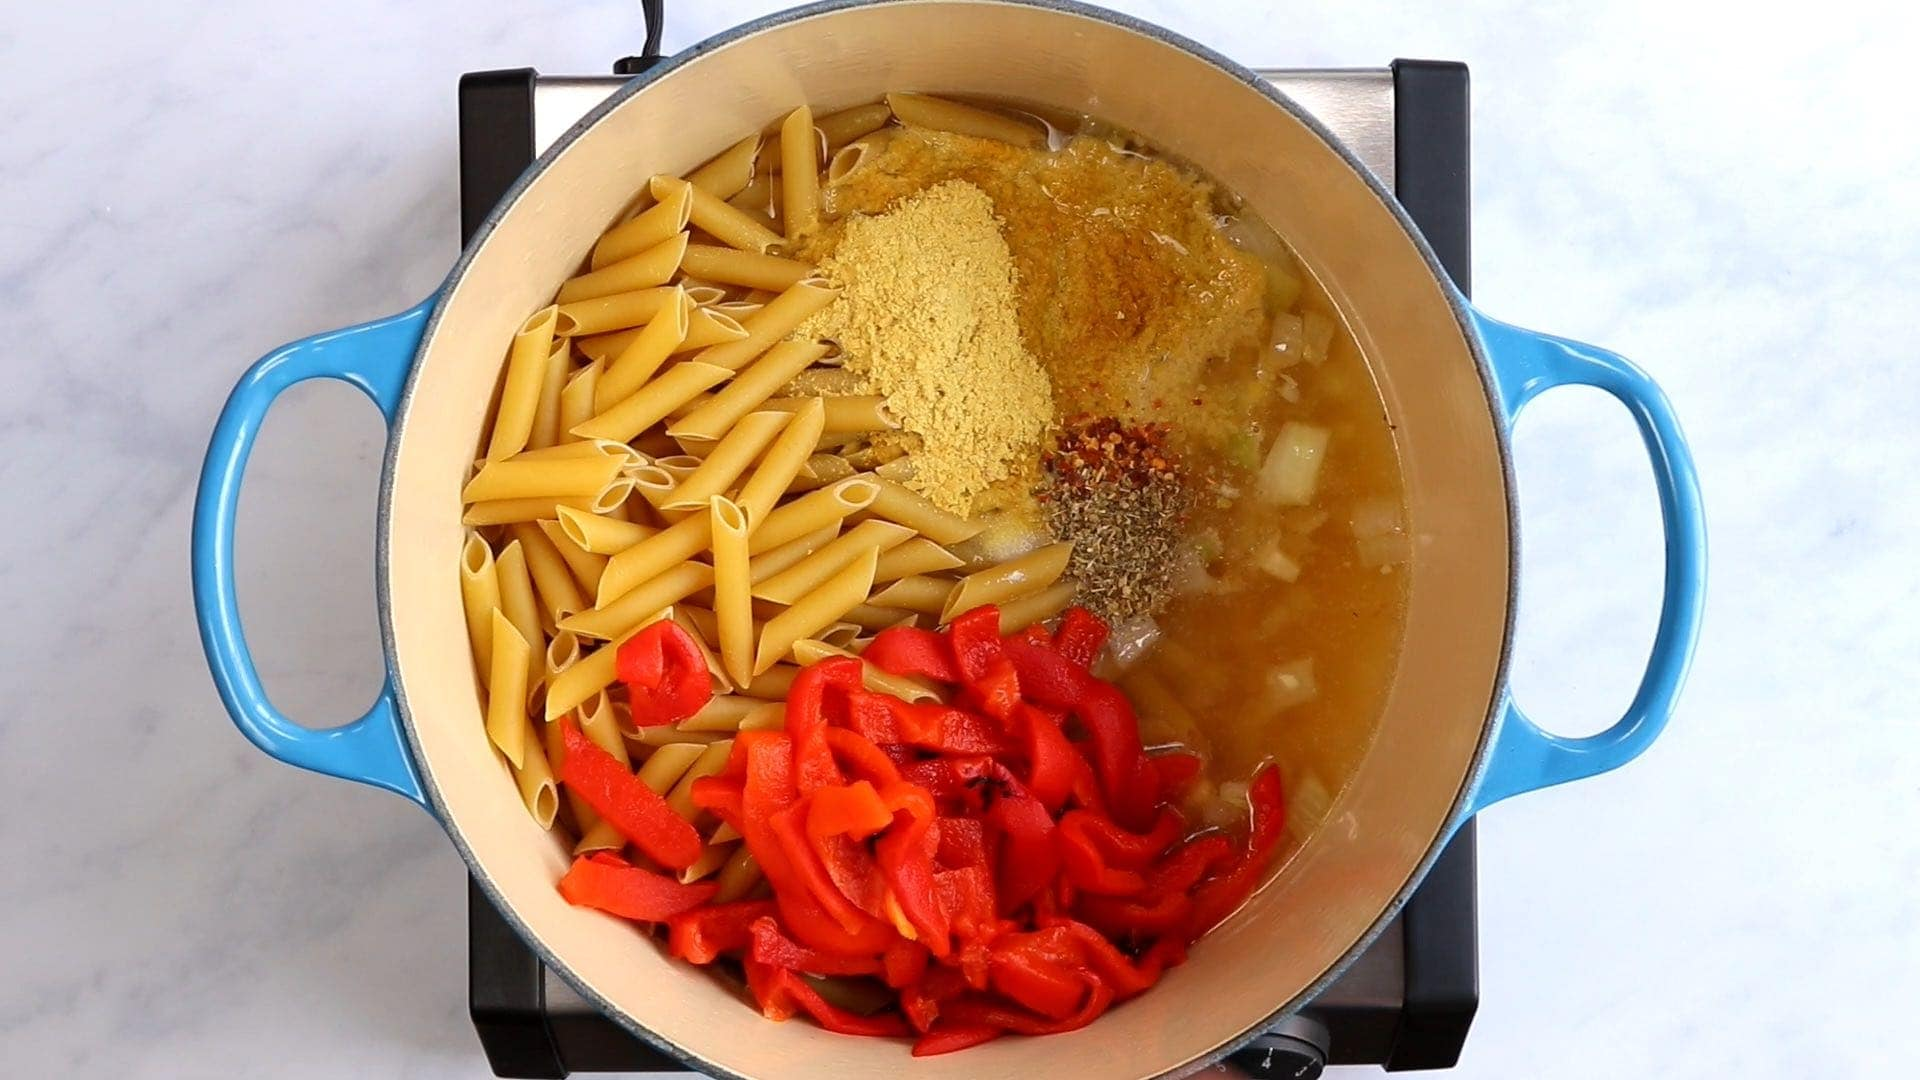 penne, roasted red pepper, nutritional yeast, spices, onion and broth in a blue dutch oven